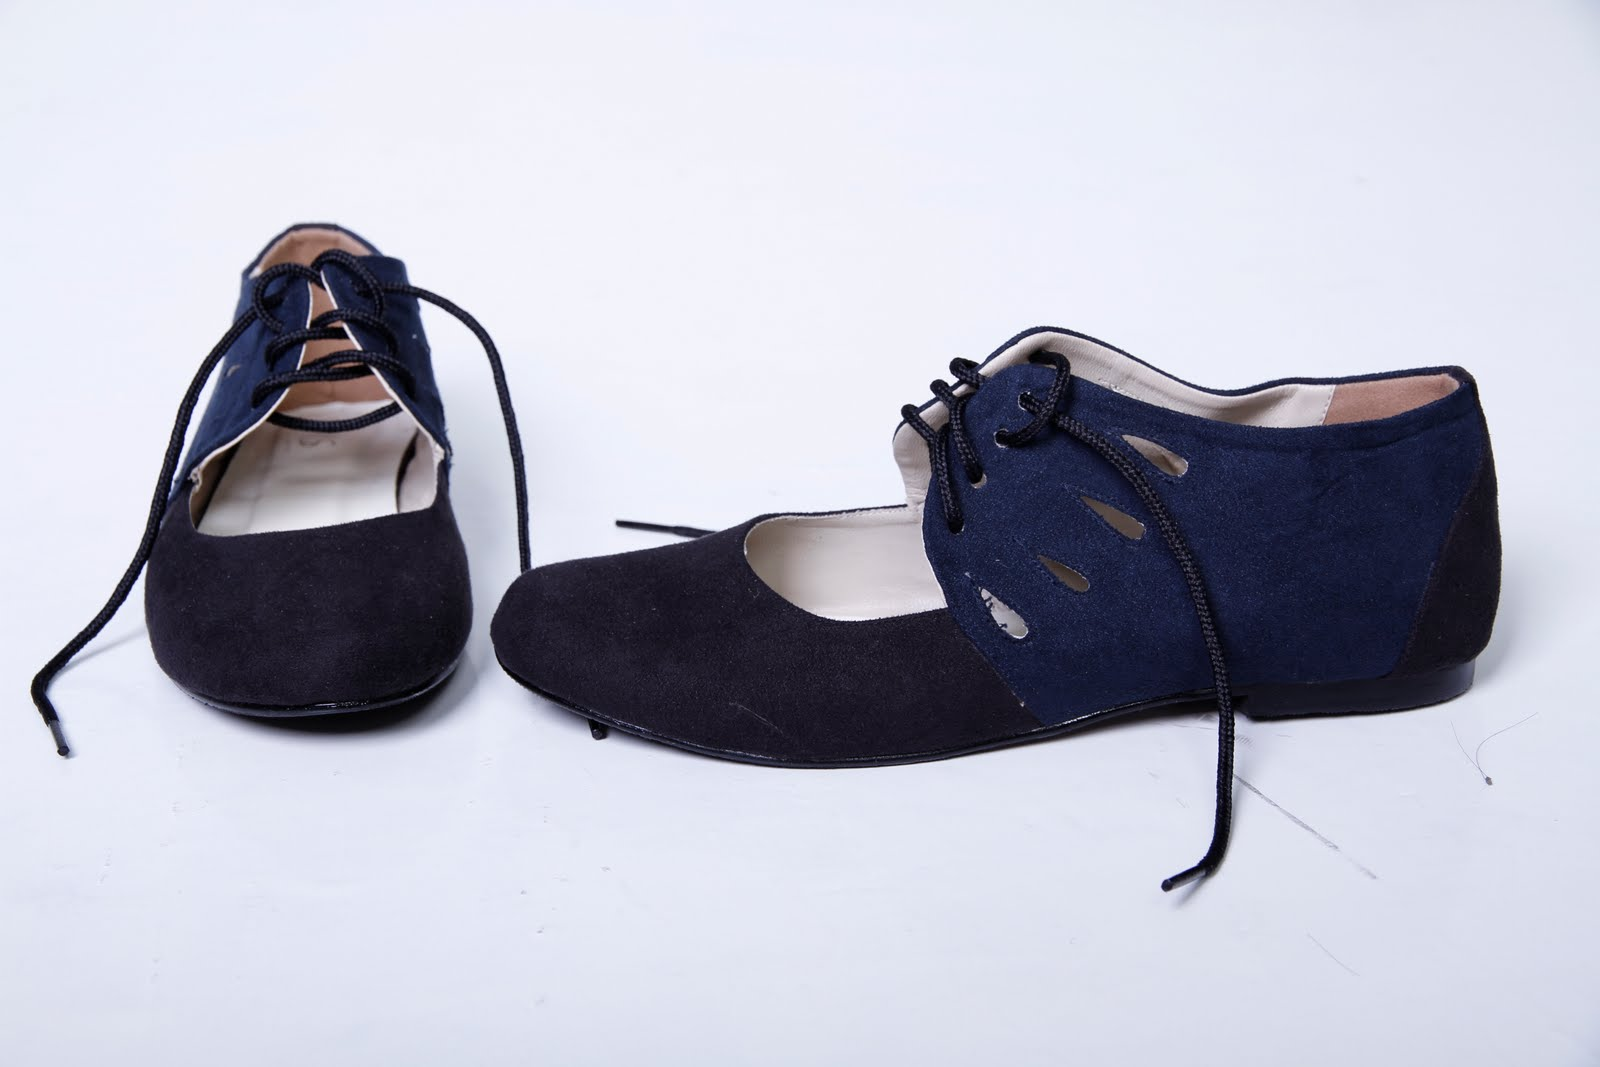 Vincci Shoes Uk